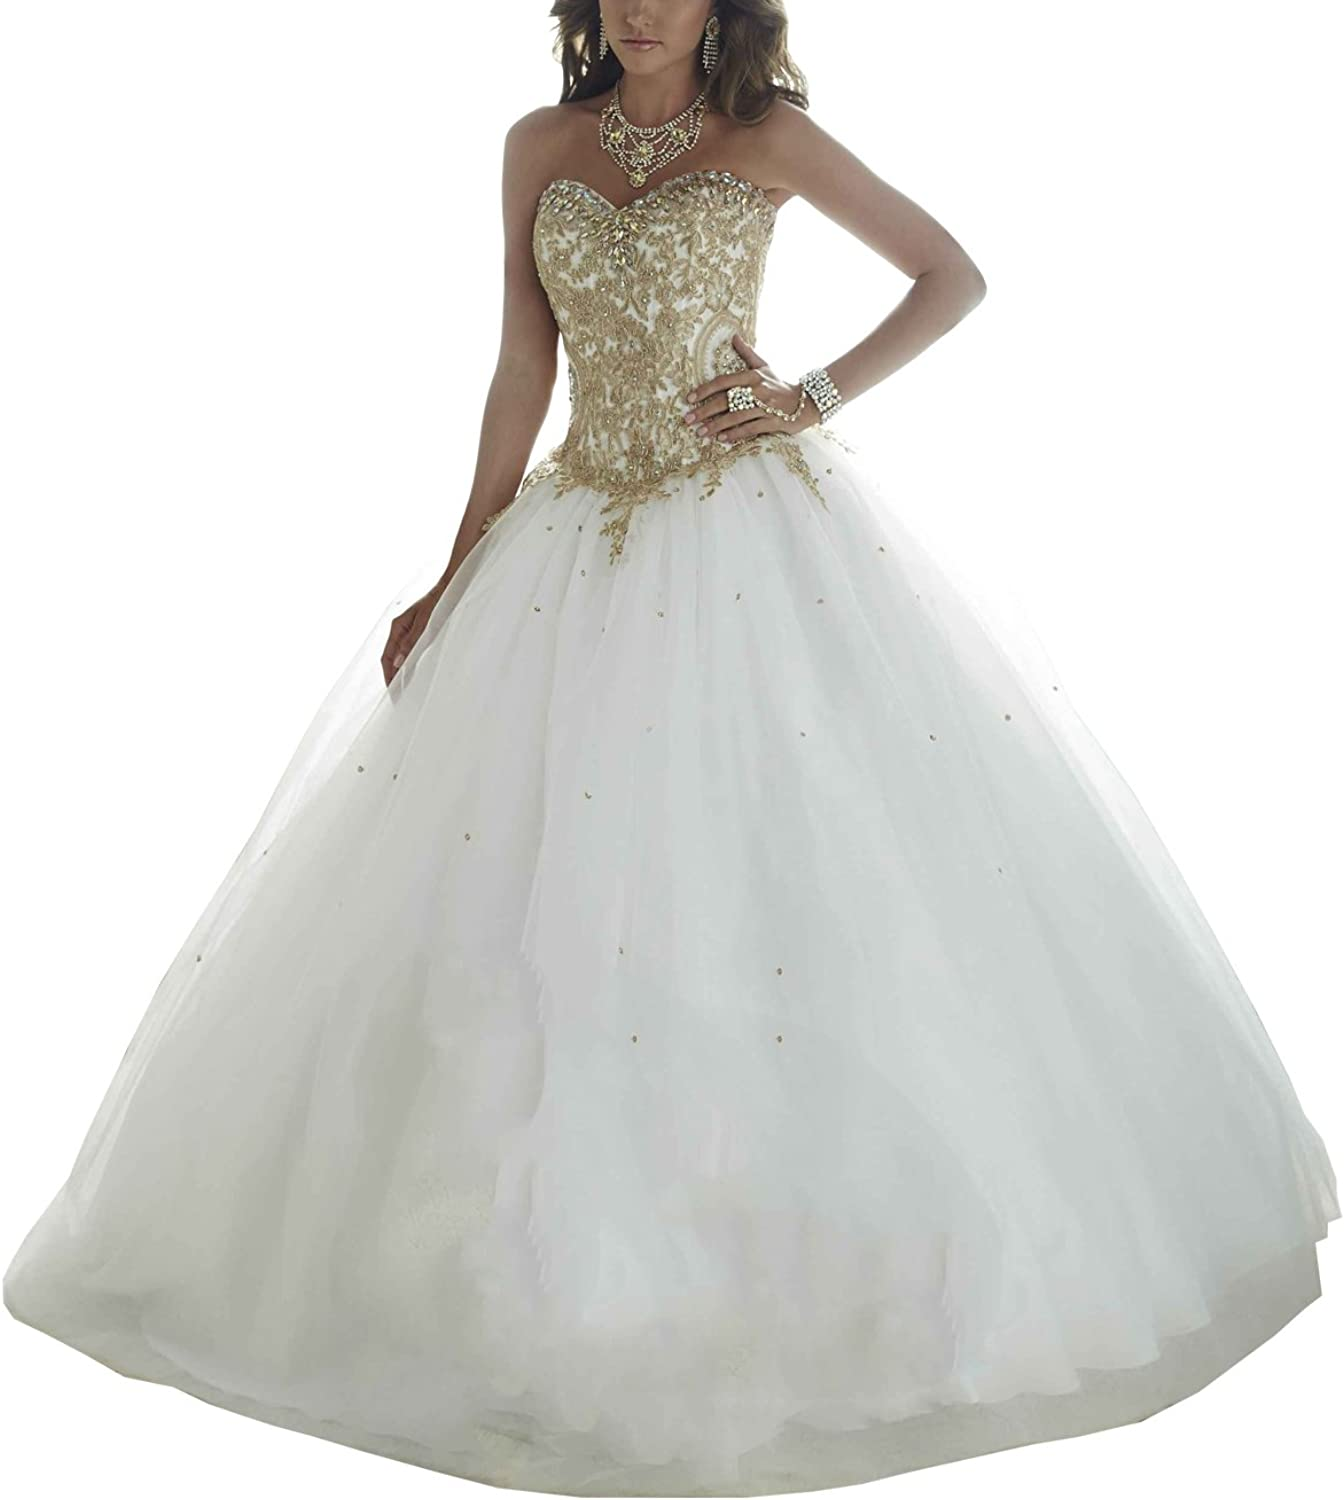 Epinkbridal gold Embroidery Ball Gown Quinceanera Dresses Women's Wedding Dresses